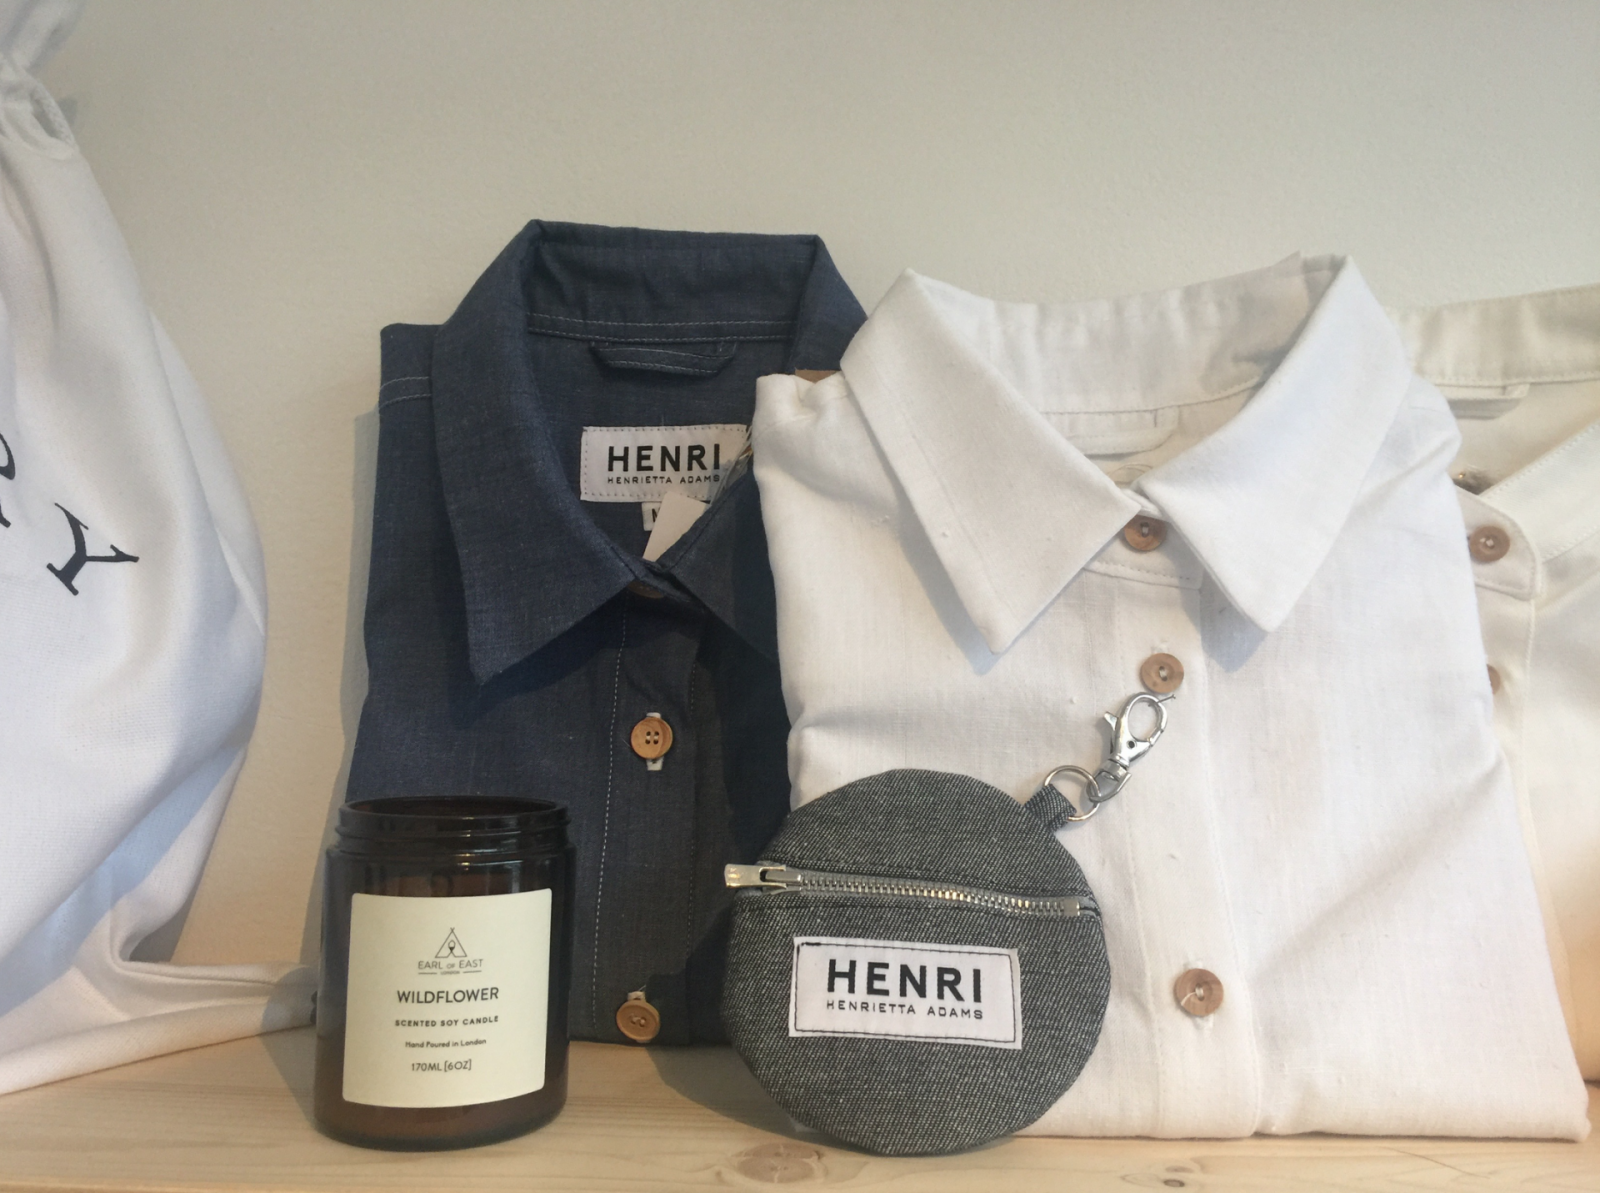 Pop Along To Henri For An Organic Shirt With a Sustainable Story